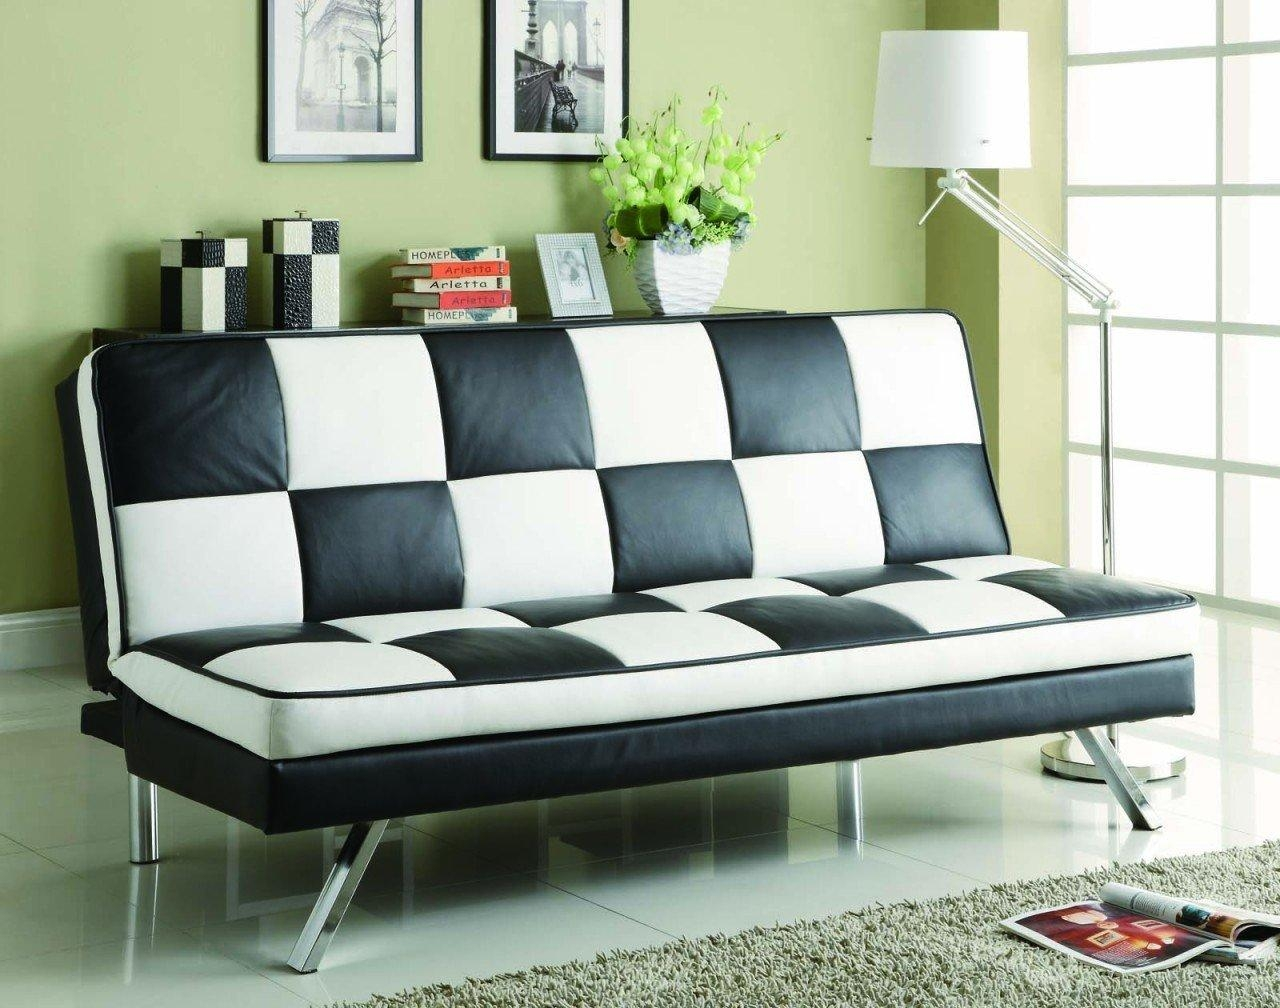 25 Best Sleeper Sofa Beds To Buy In 2017 Throughout Coaster Futon Sofa Beds (Image 2 of 20)